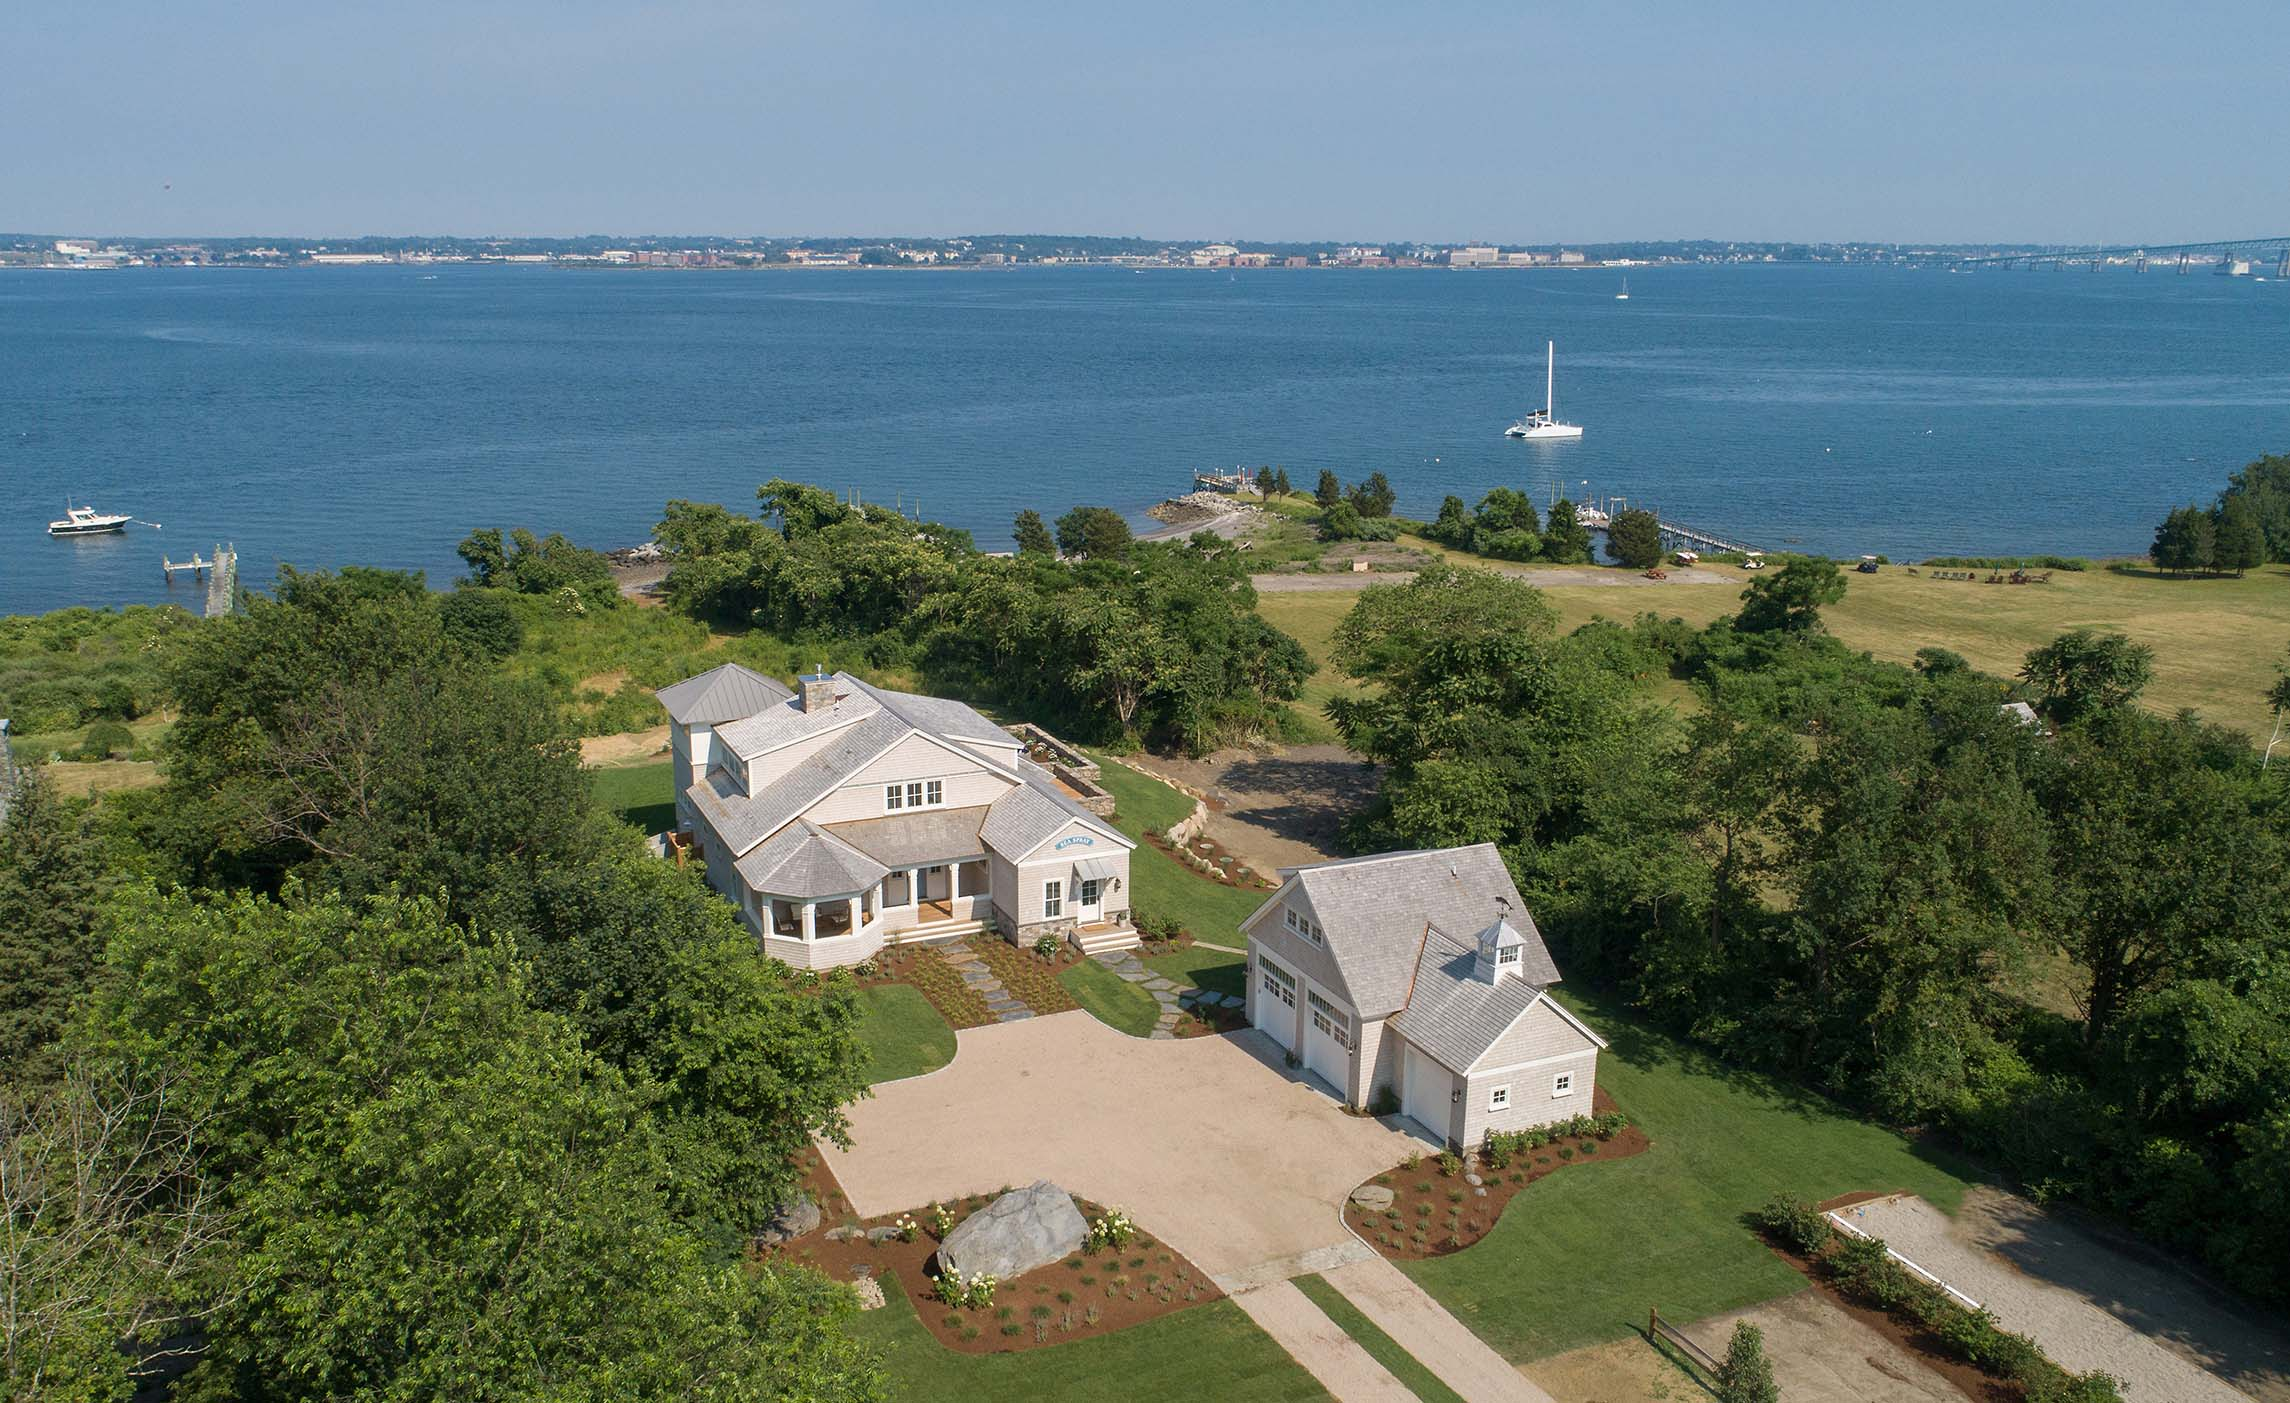 'SEA SPRAY', JAMESTOWN WATERFRONT NEW CONSTRUCTION, SELLS FOR $5M WITH LILA DELMAN ASSOCIATES REPRESENTING BOTH THE BUYER AND SELLER